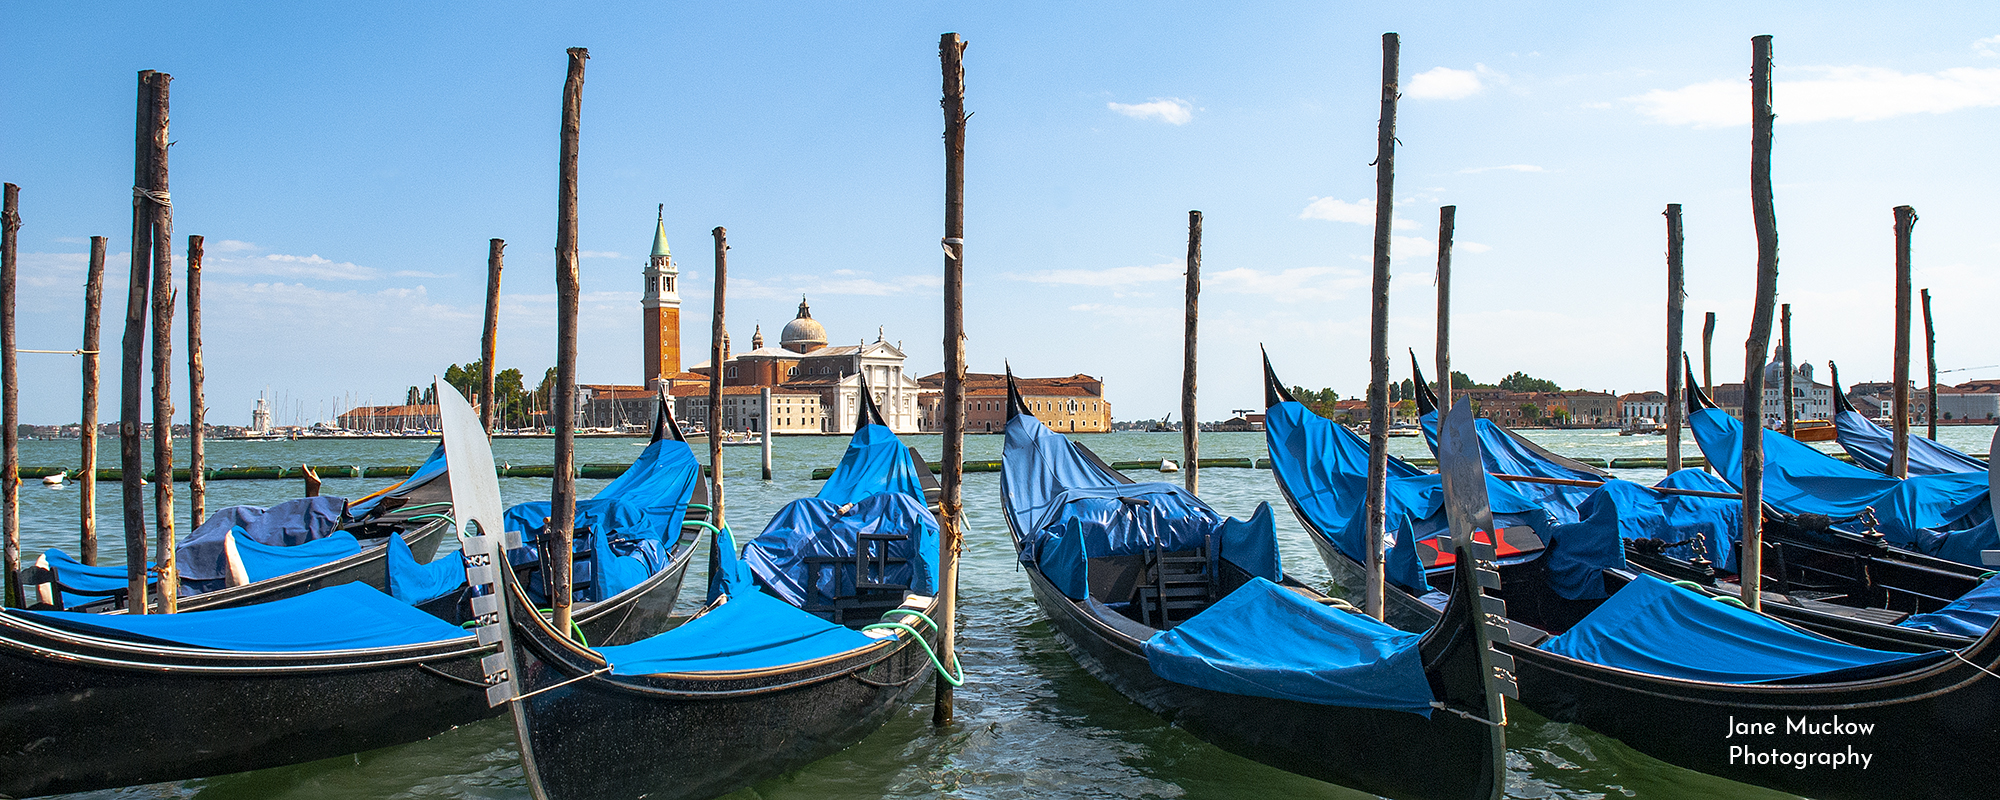 Photo by Jane Mucklow of gondolas in Venice, available as a canvas for your wall.